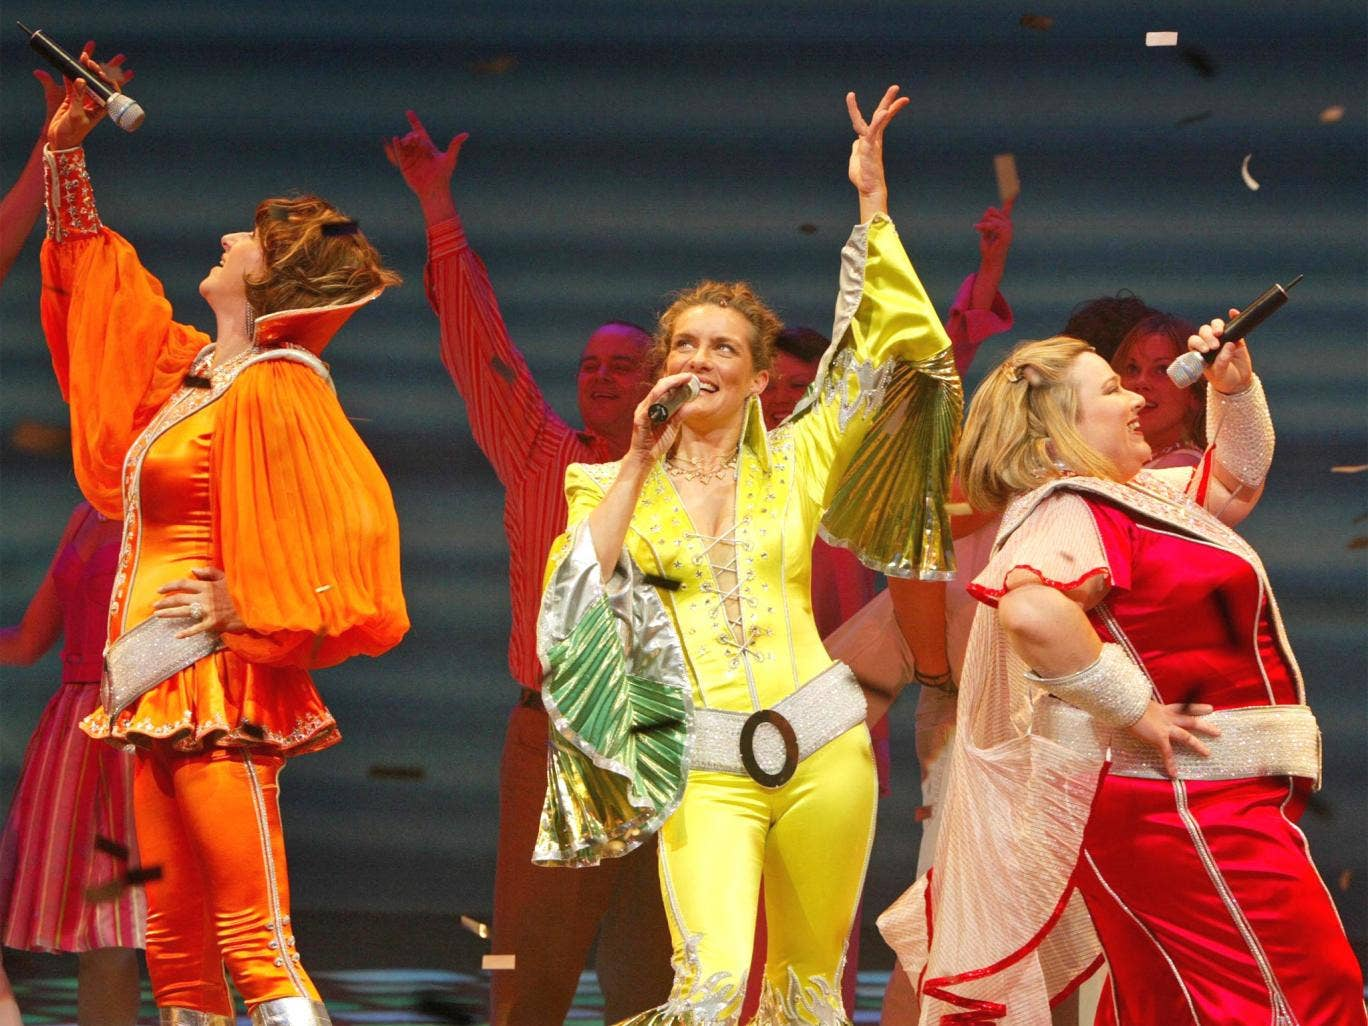 'Mamma Mia!' has been a runaway success in the West End